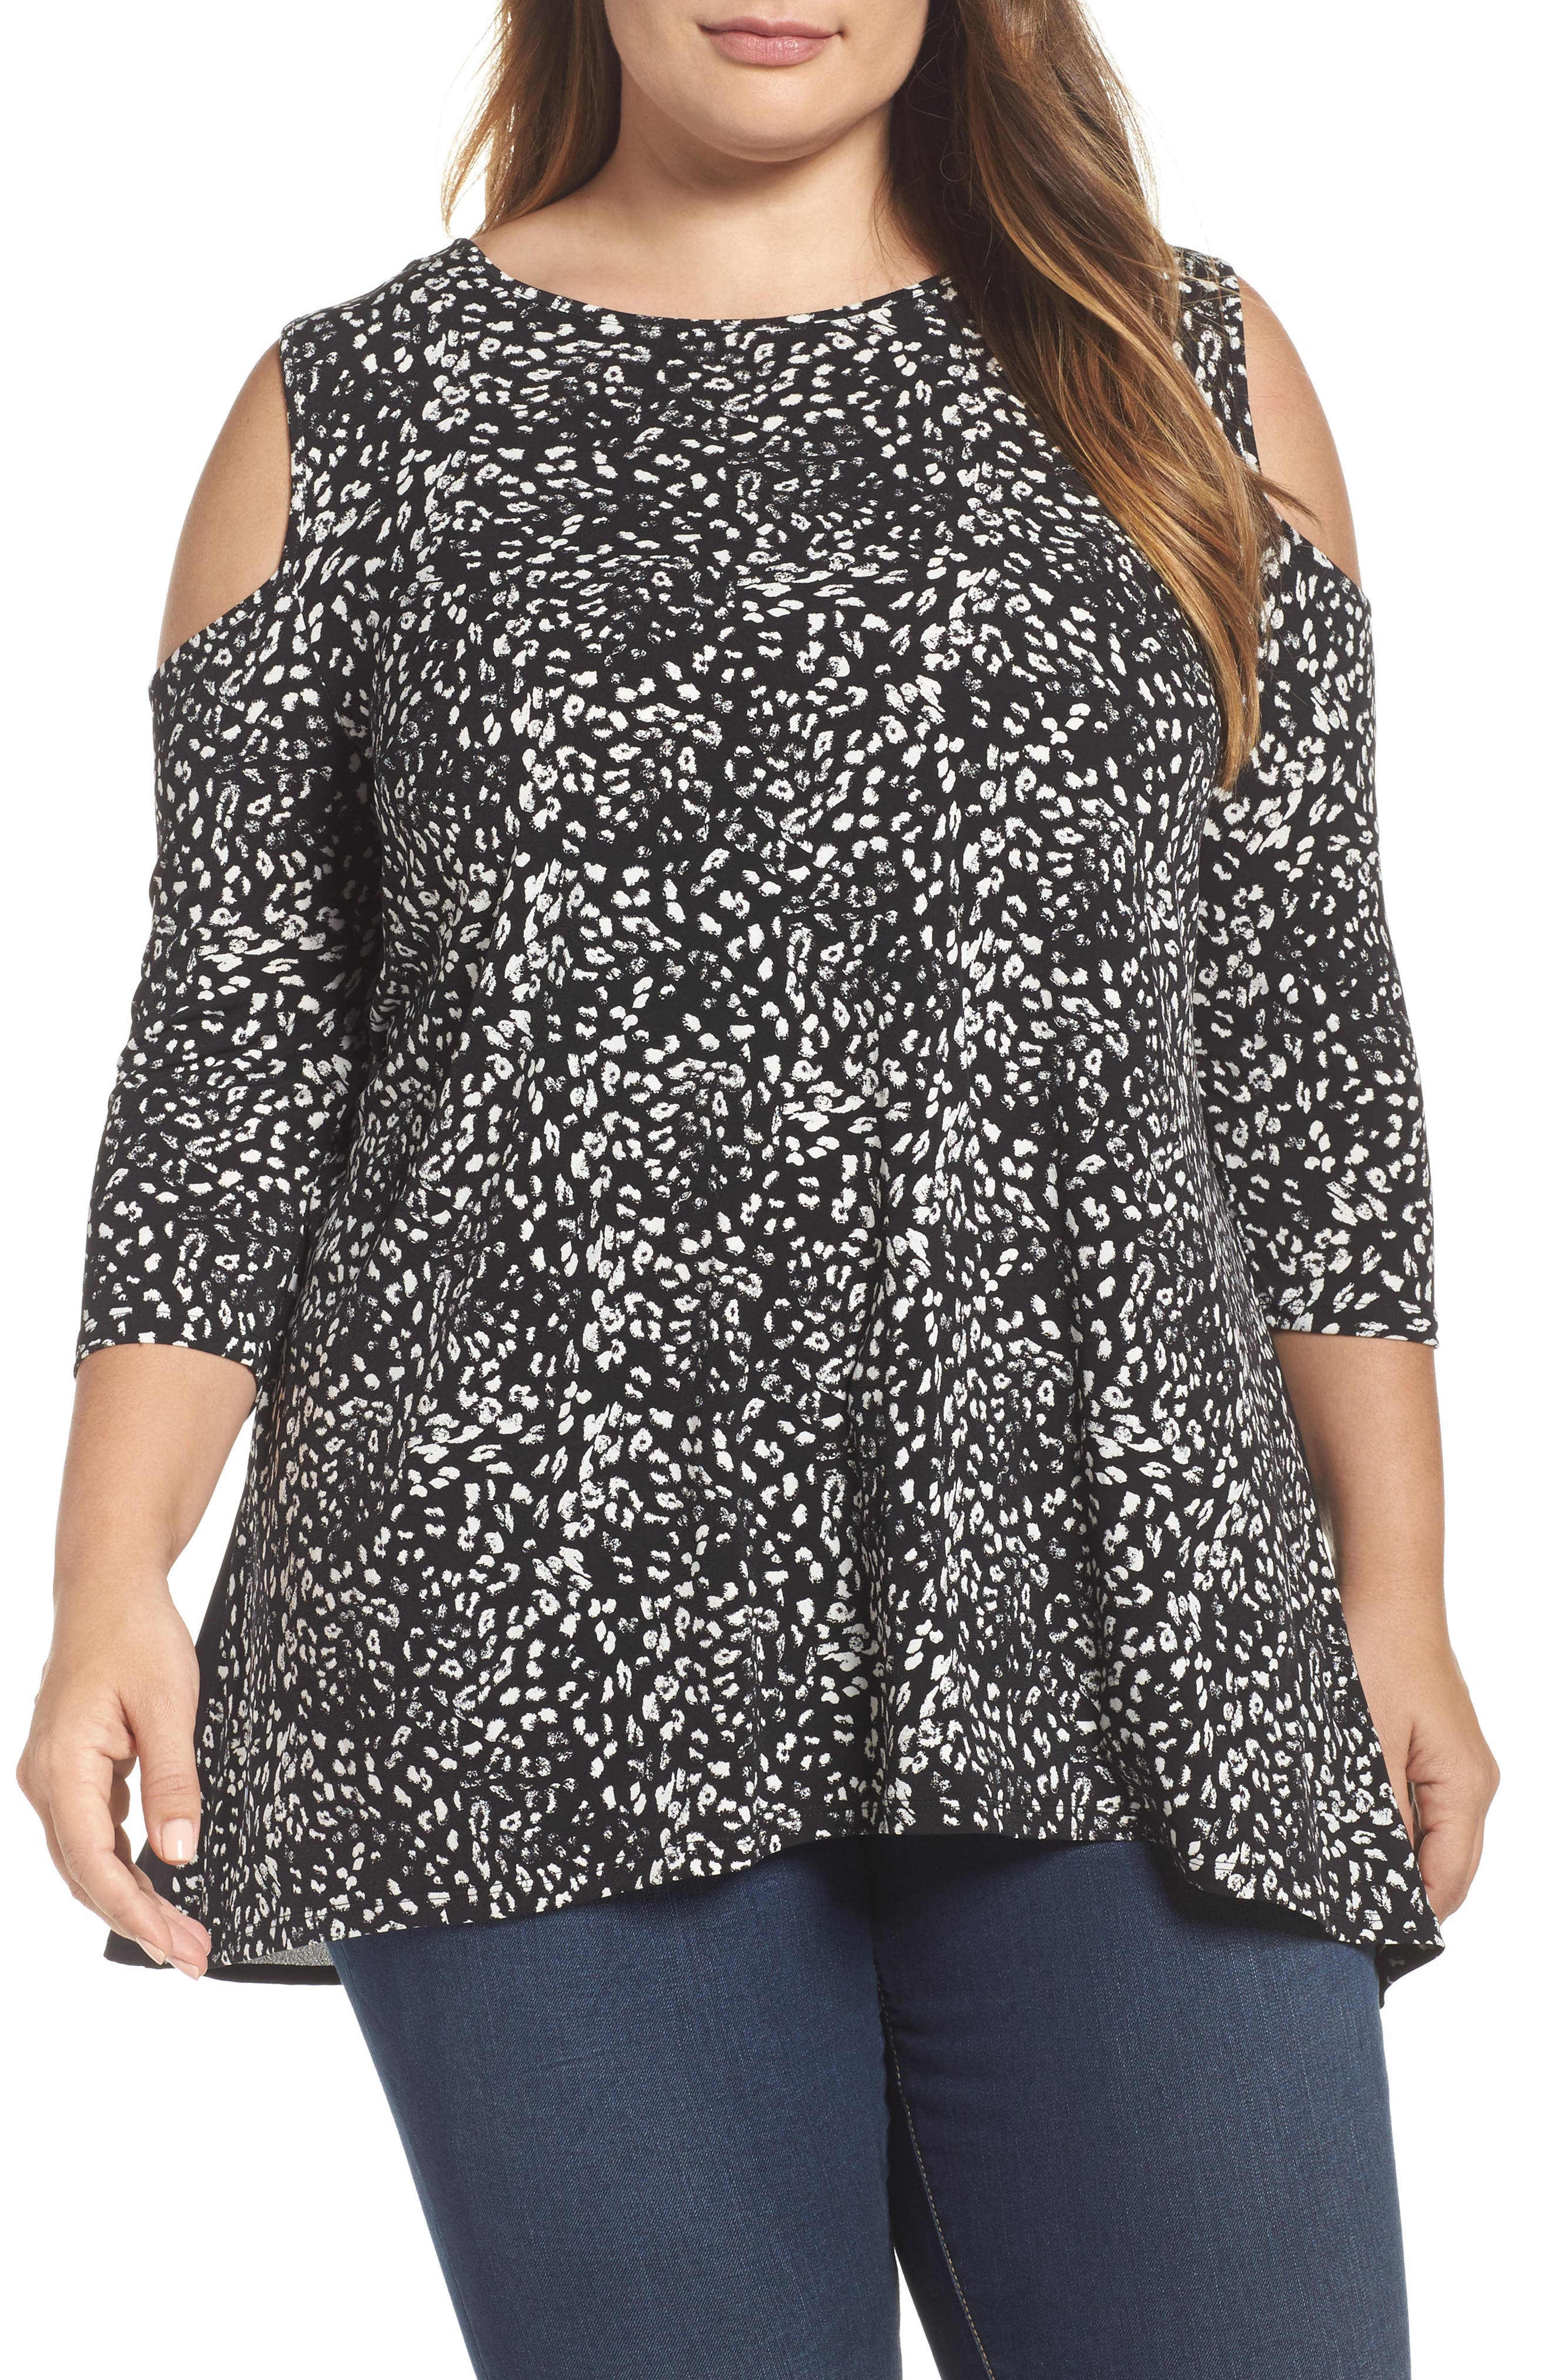 Vince Camuto Animal Whispers Cold Shoulder Top (Plus Size)